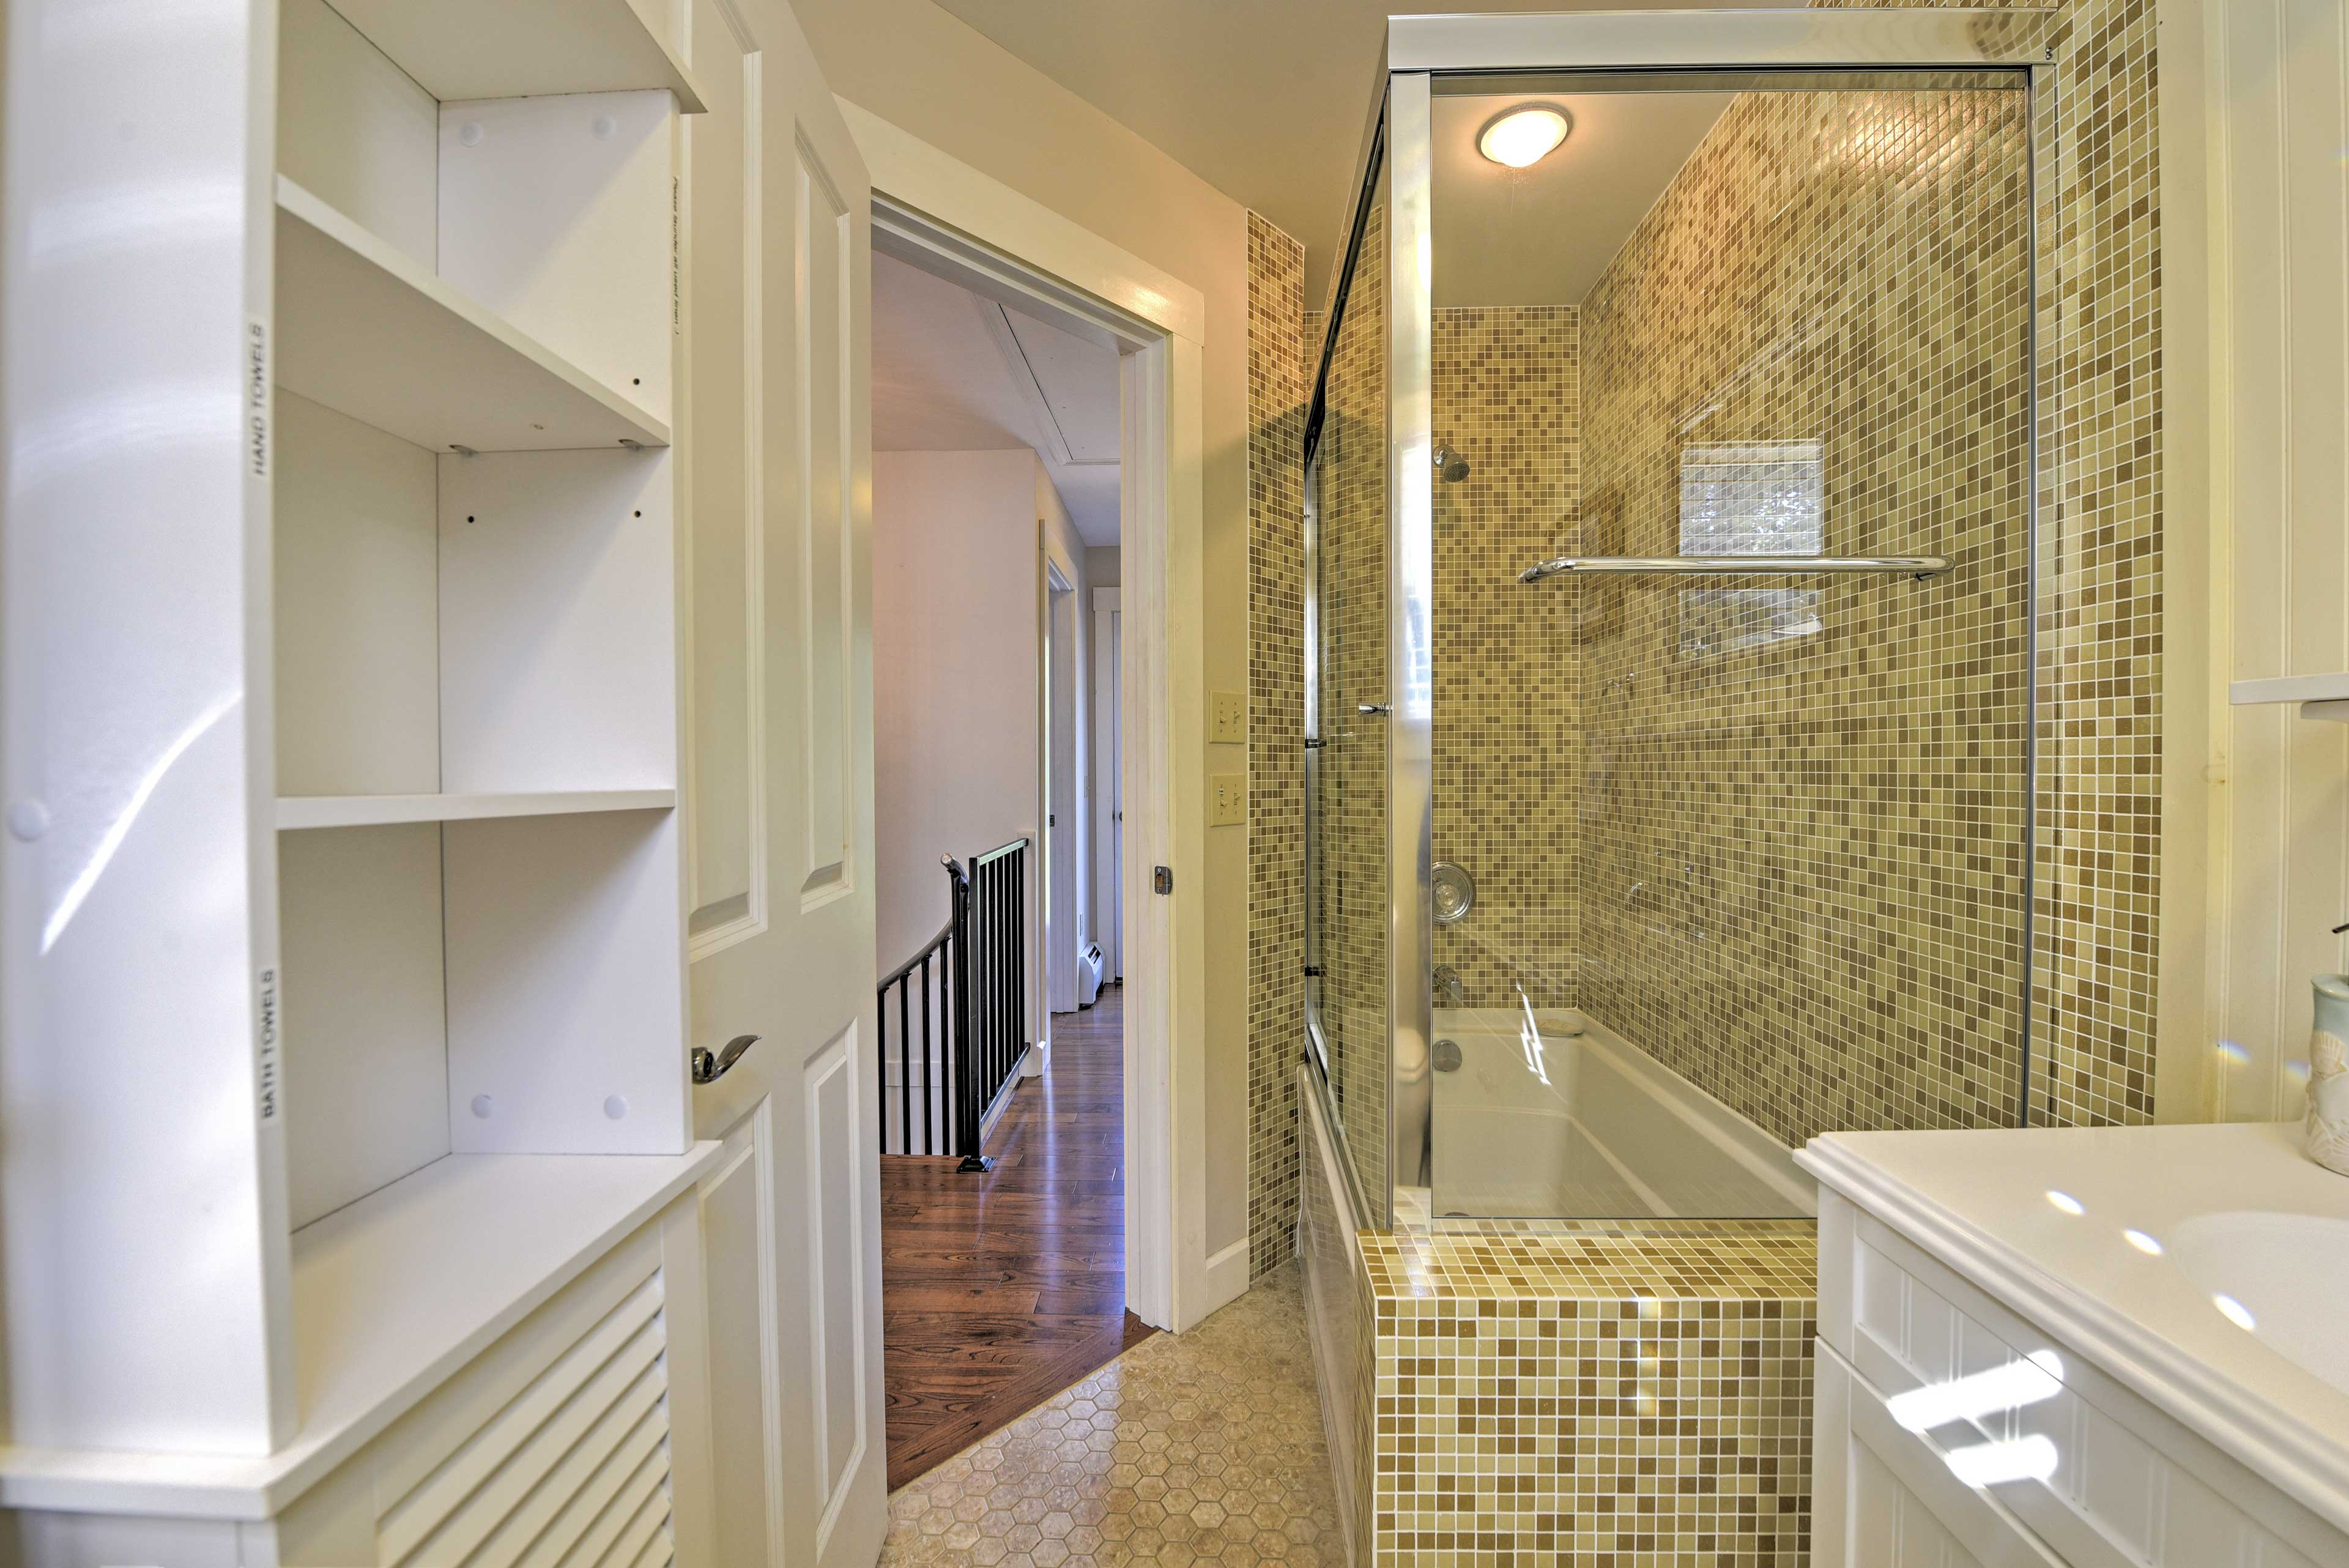 Rinse off in the shower or soak in the tub.